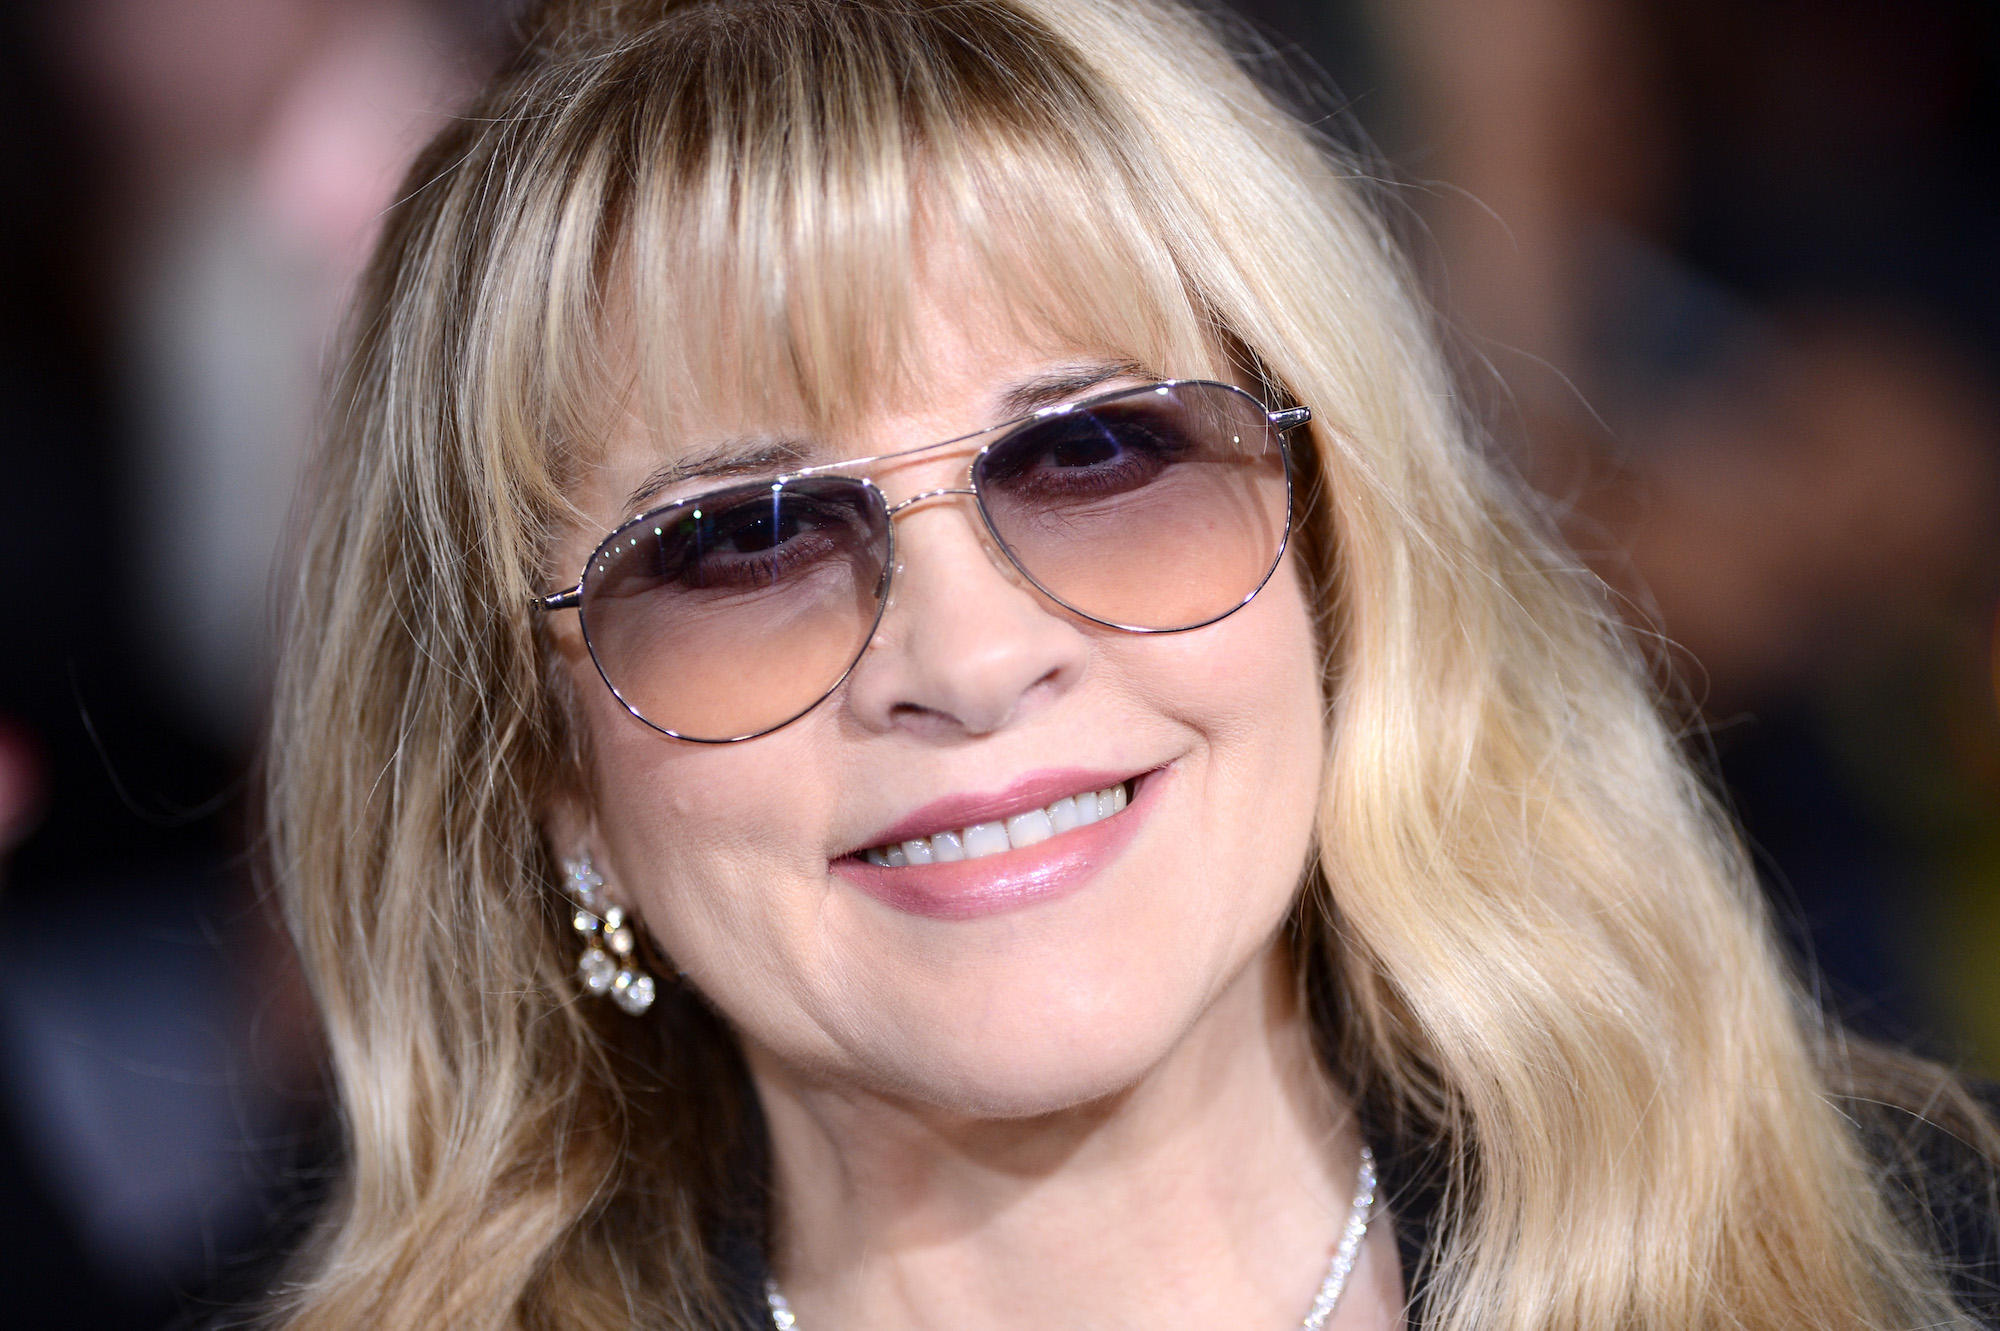 Stevie Nicks at the premiere of 'The Twilight Saga: Breaking Dawn - Part 2' at Nokia Theatre L.A. on Nov. 12, 2012.